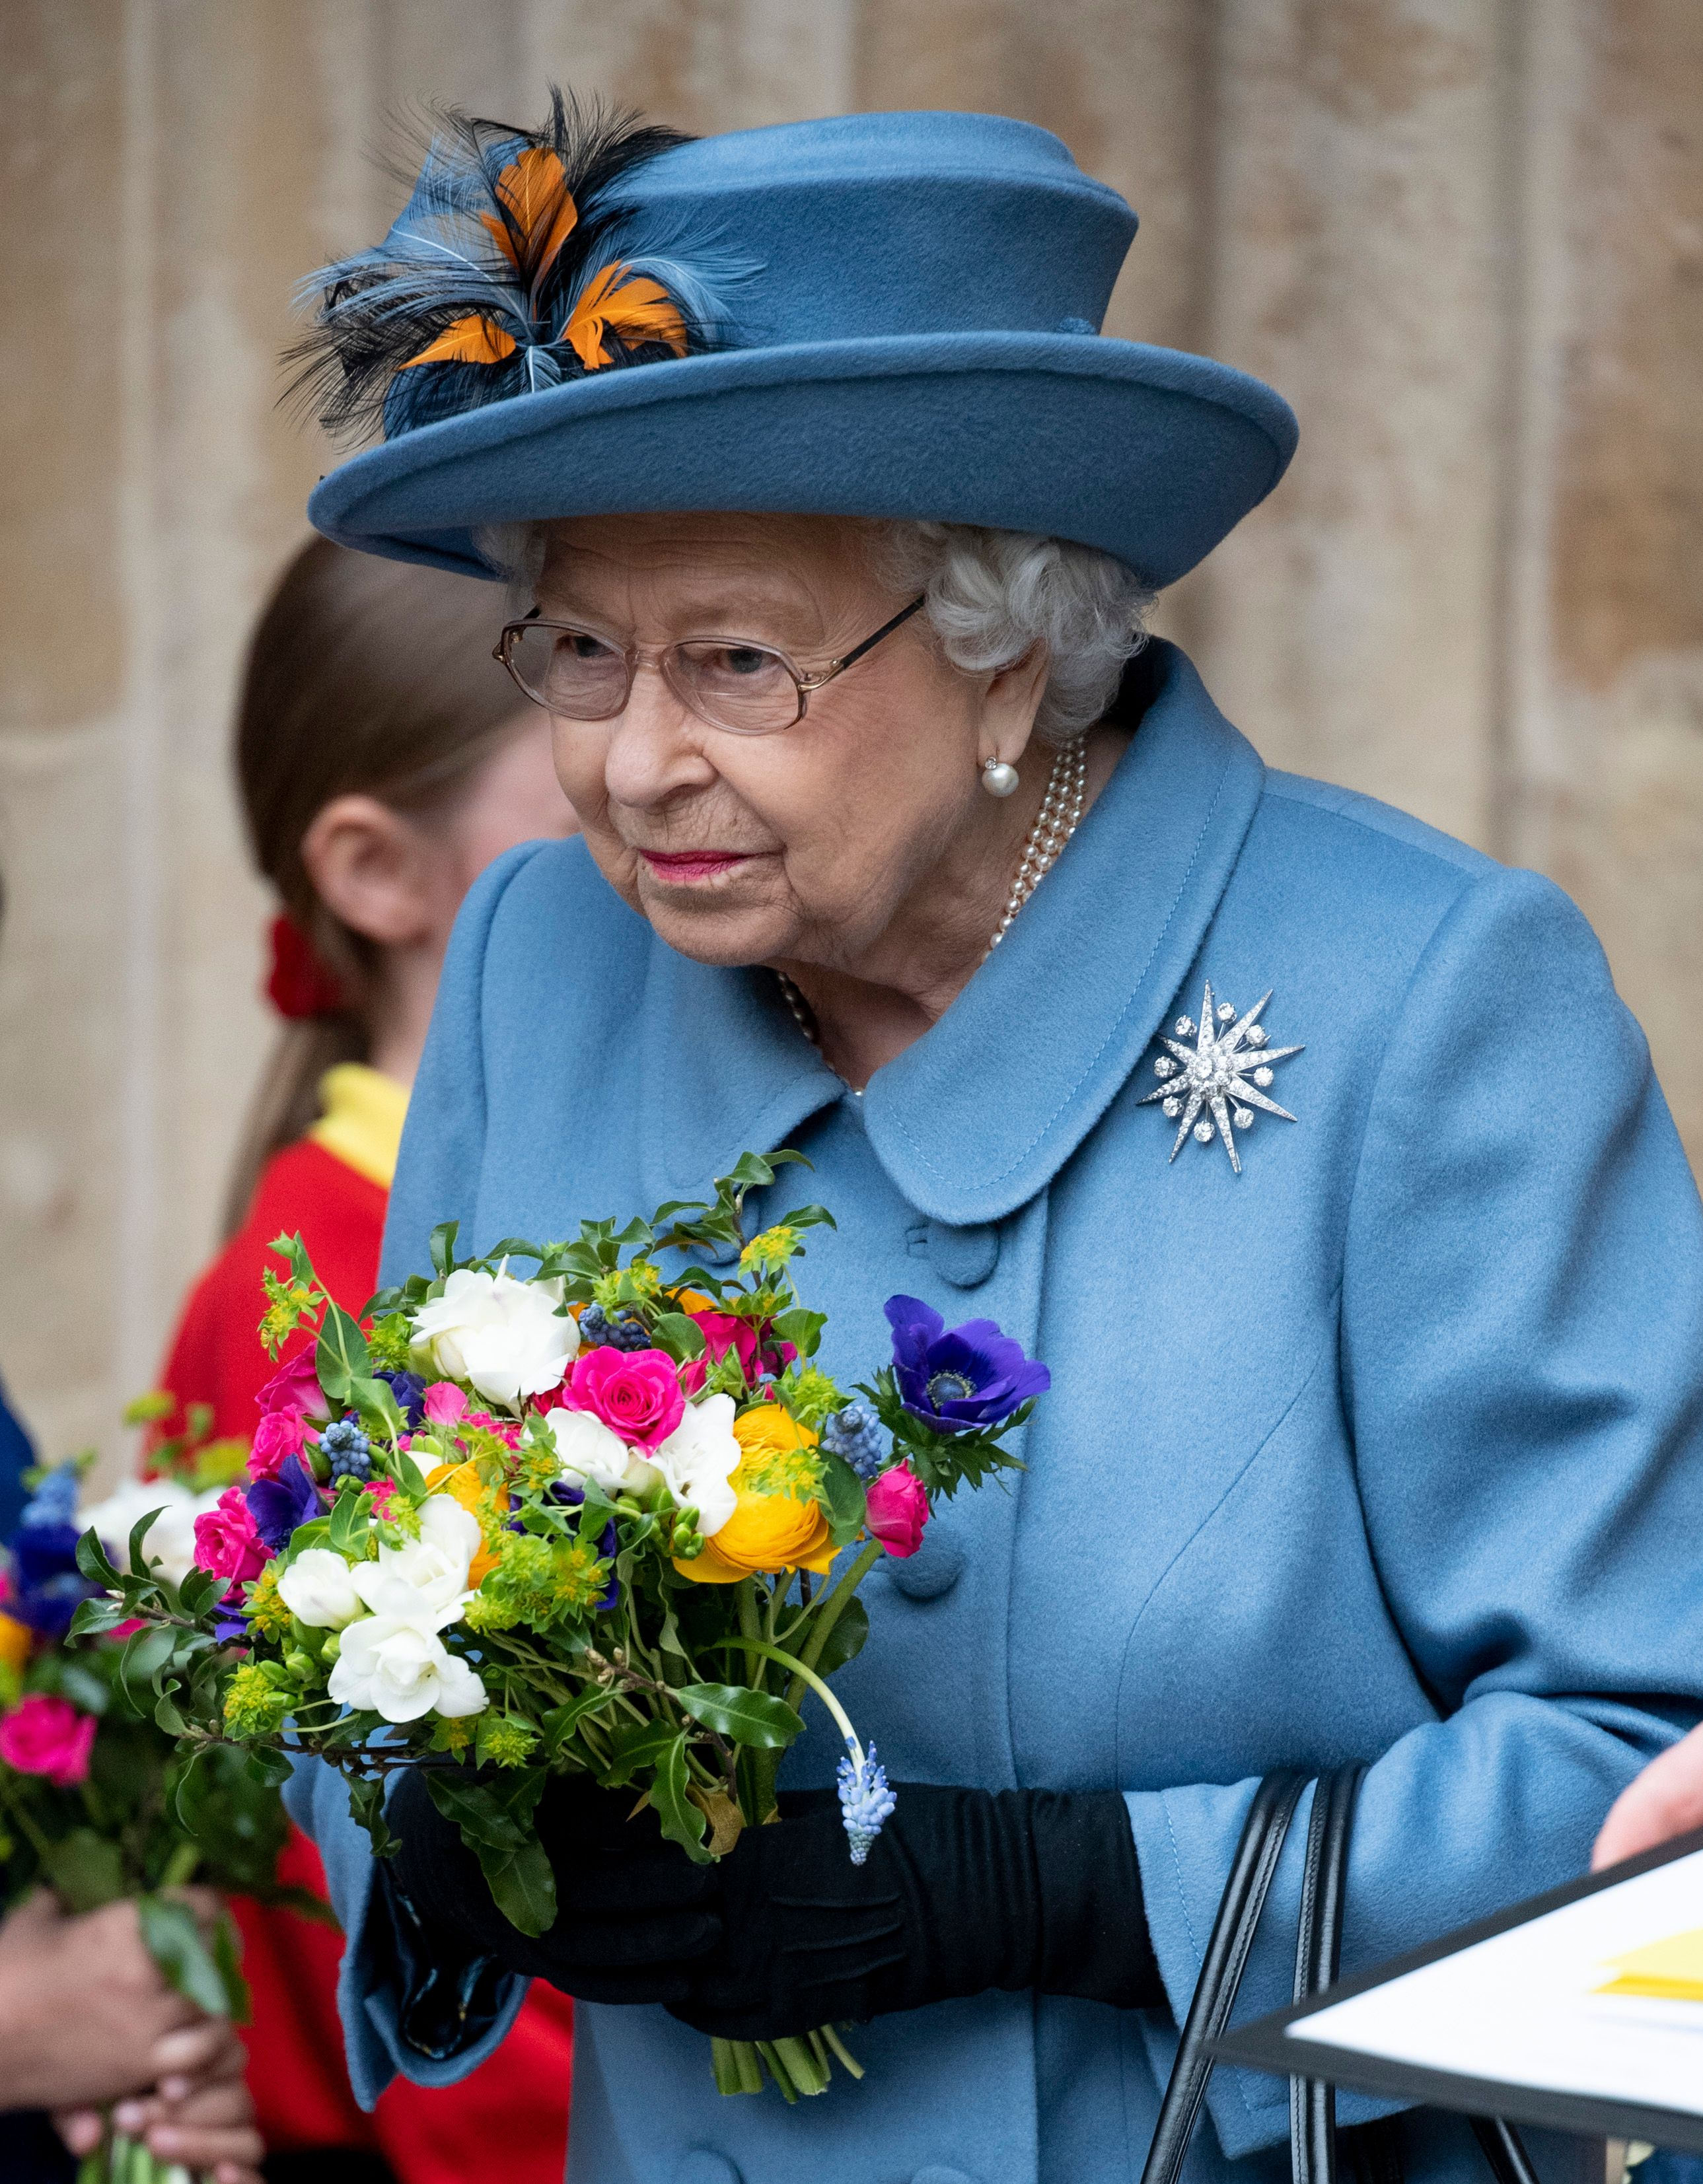 Queen Elizabeth II at the Commonwealth Day Service 2020 at Westminster Abbey on March 9, 2020.   Source: Getty Images.